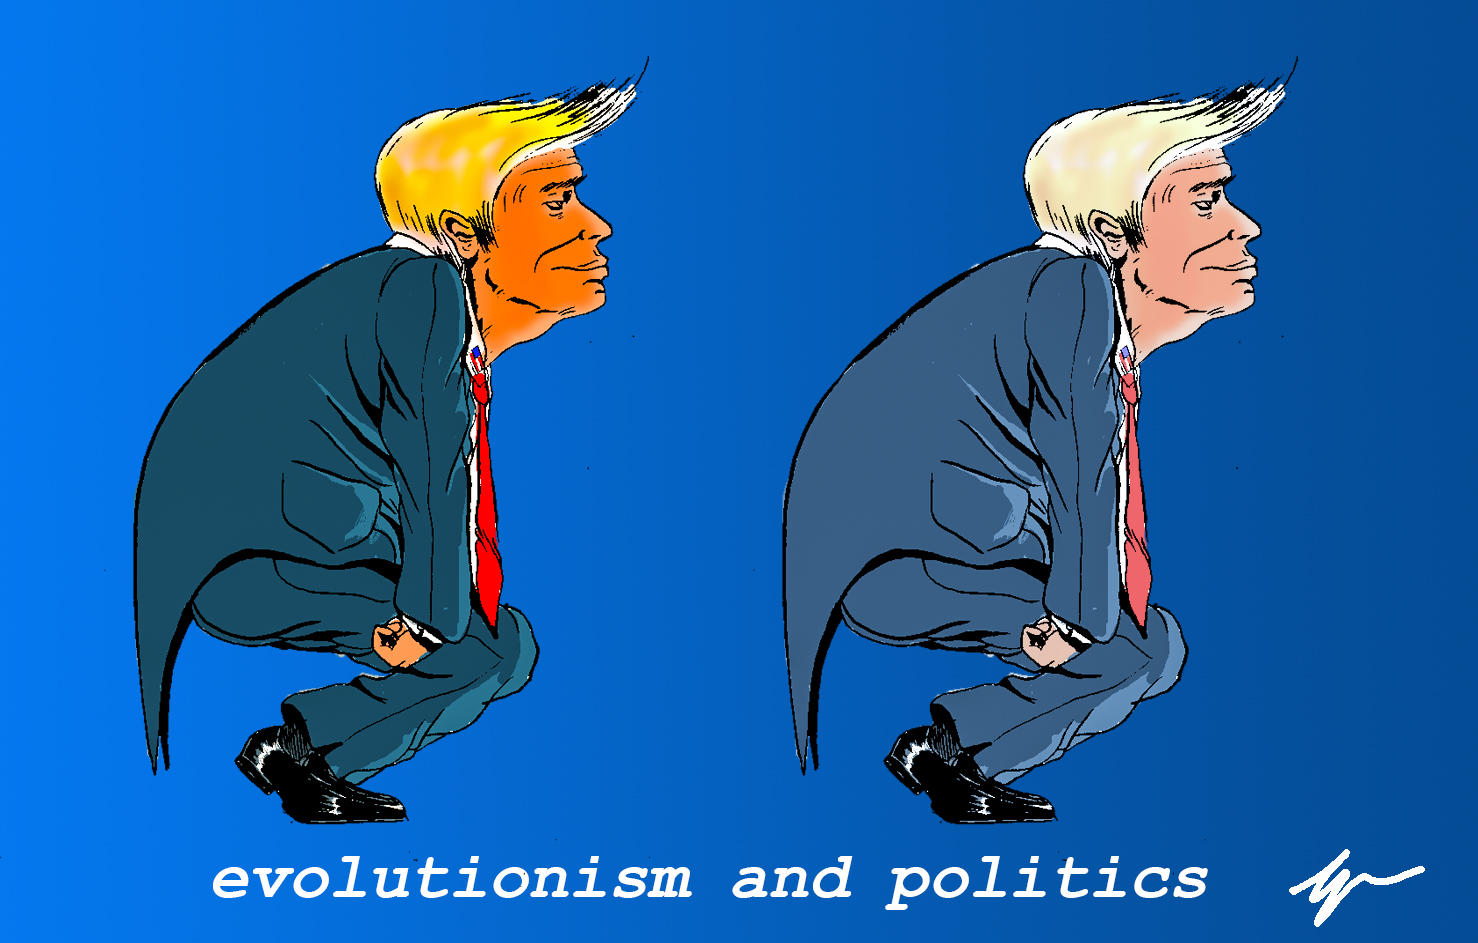 the picture is a satyrical cartoon with two version of US president Donald Trump in a prehistoric man-like pose. The only difference between the two is the color saturation